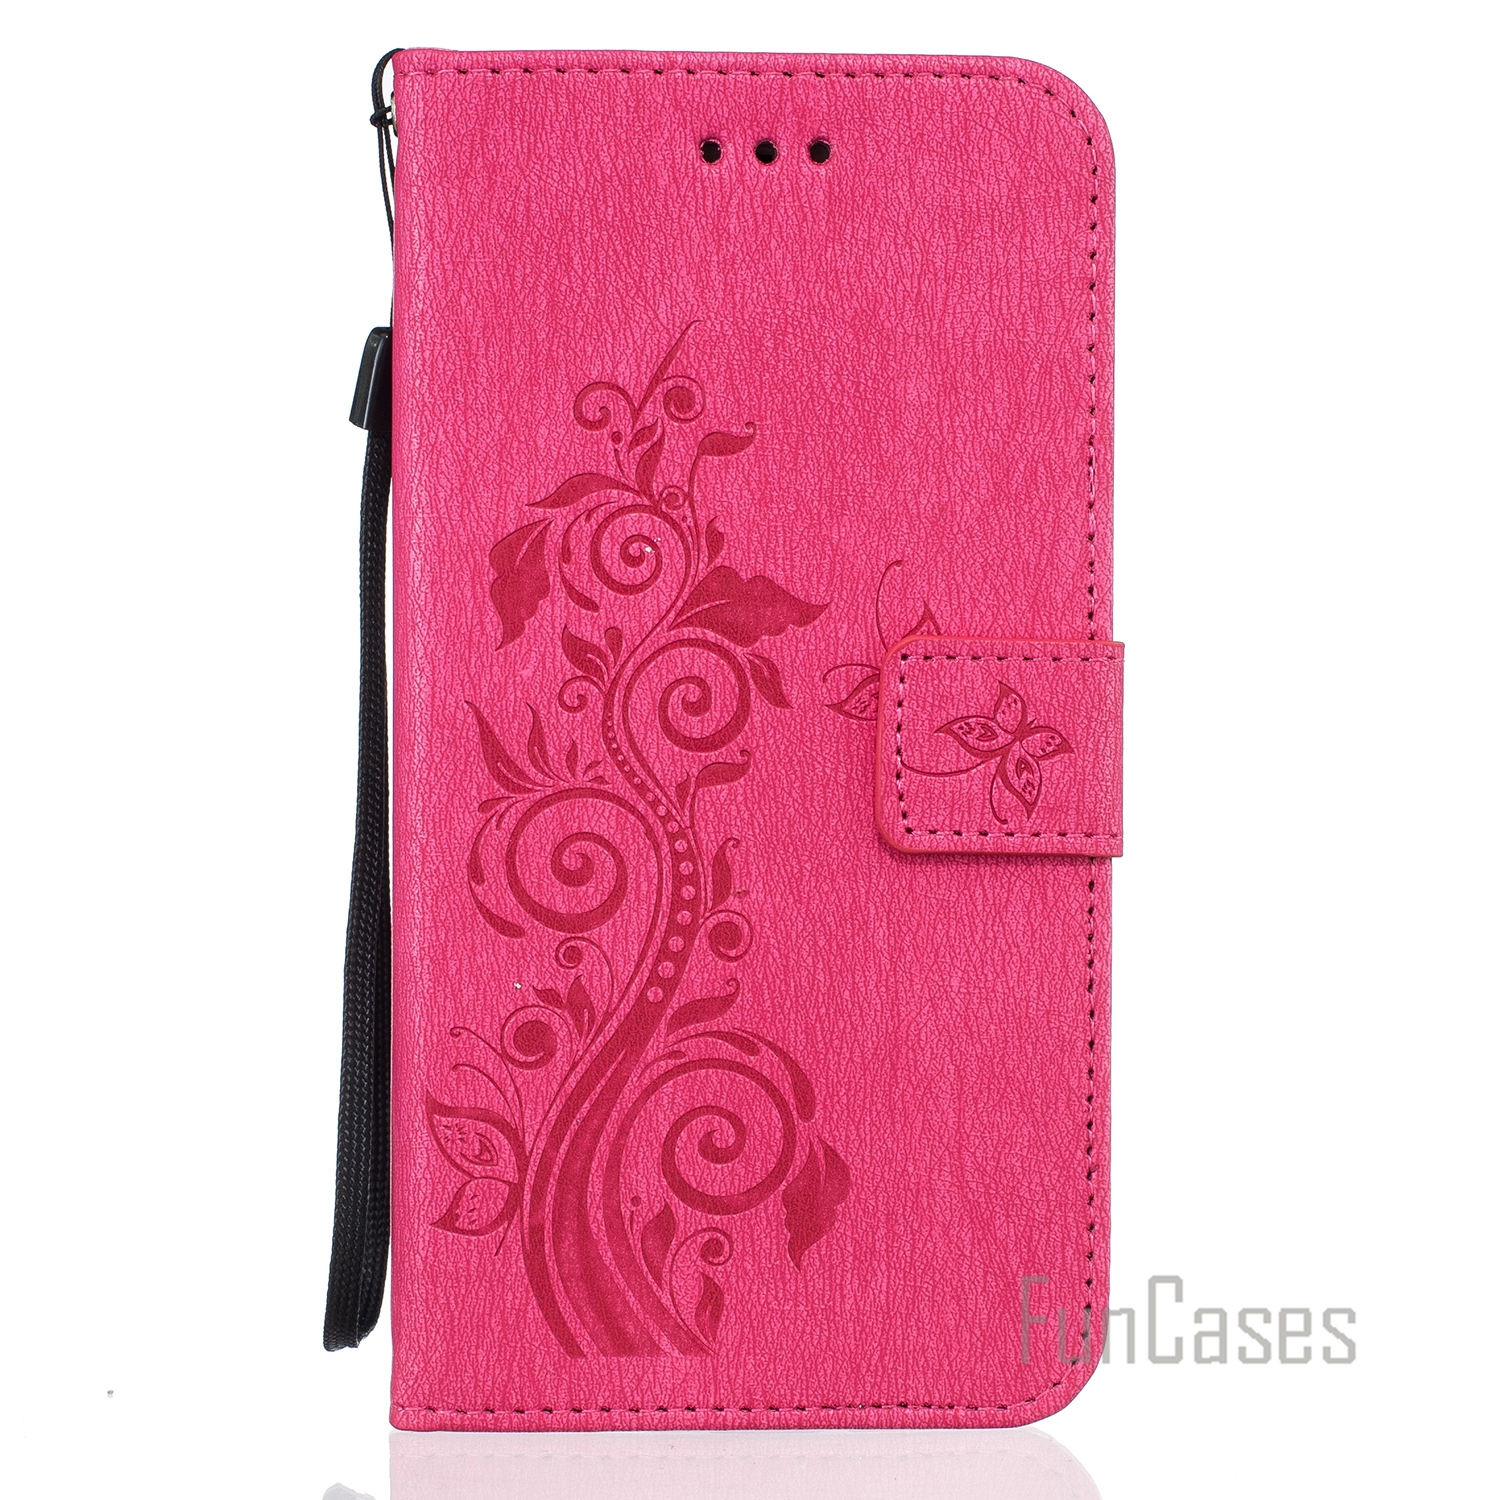 Luxury PU Leather Flip Phone Case Cover For iPhone 6S Embossing Wallet Card Slots Stand Case Bag For iPhone 6S 4.7inch Celular